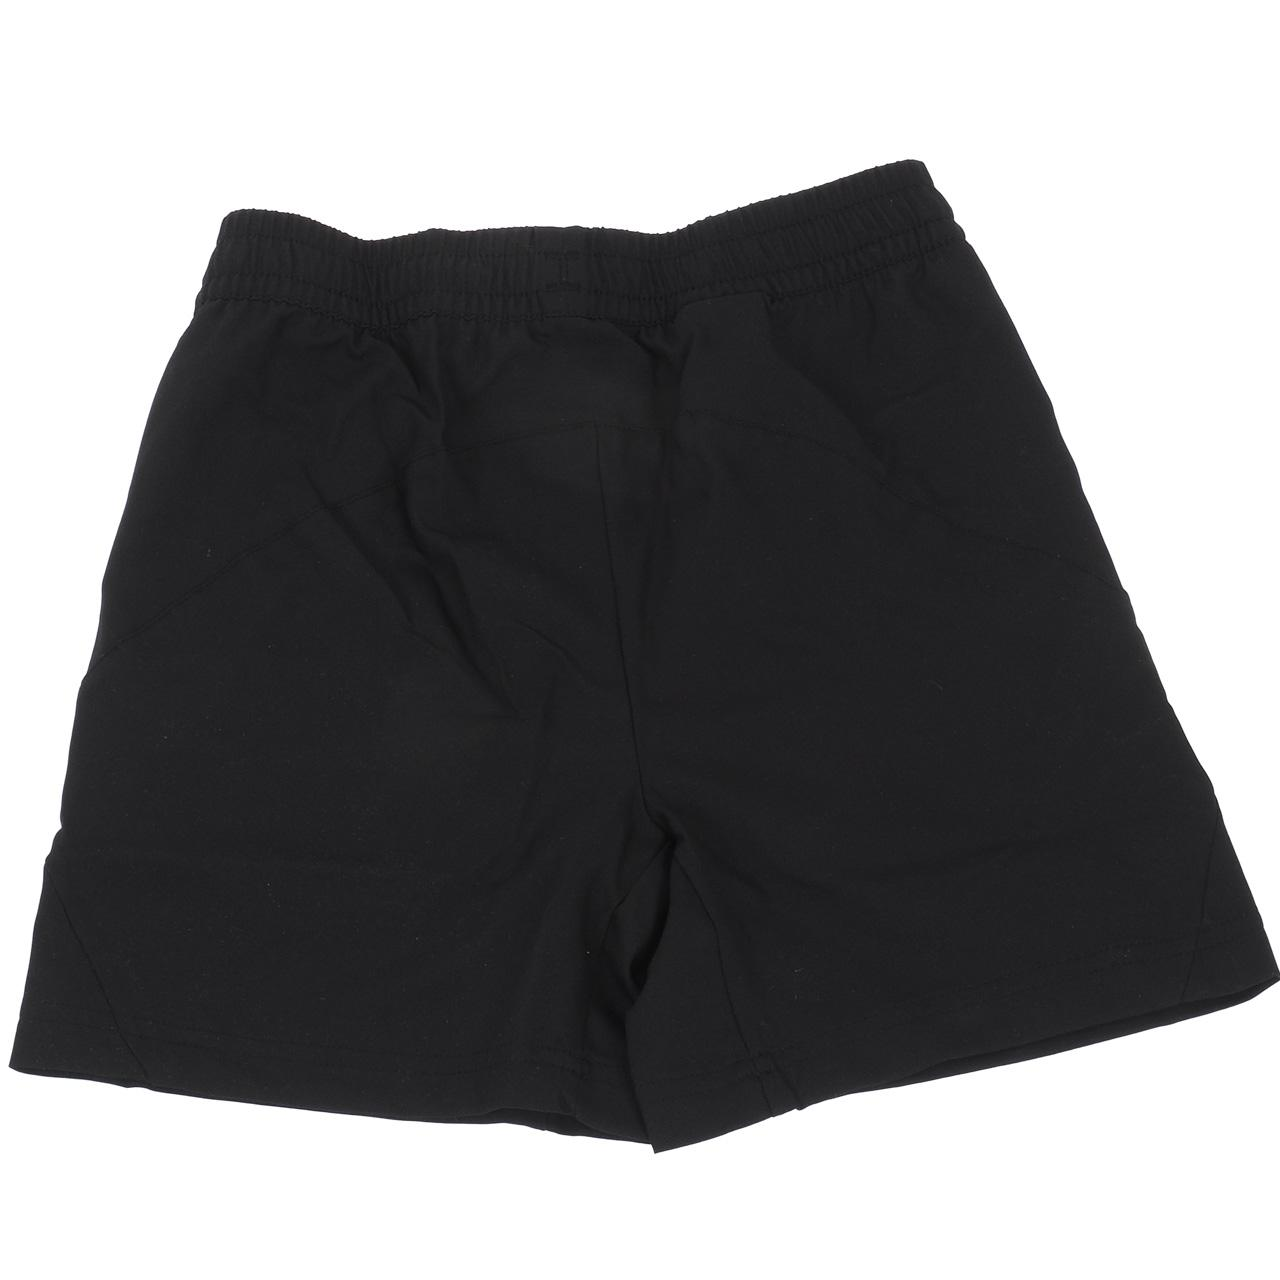 Short-de-tennis-Babolat-Short-core-black-kid-Blanc-70503-Neuf miniature 5